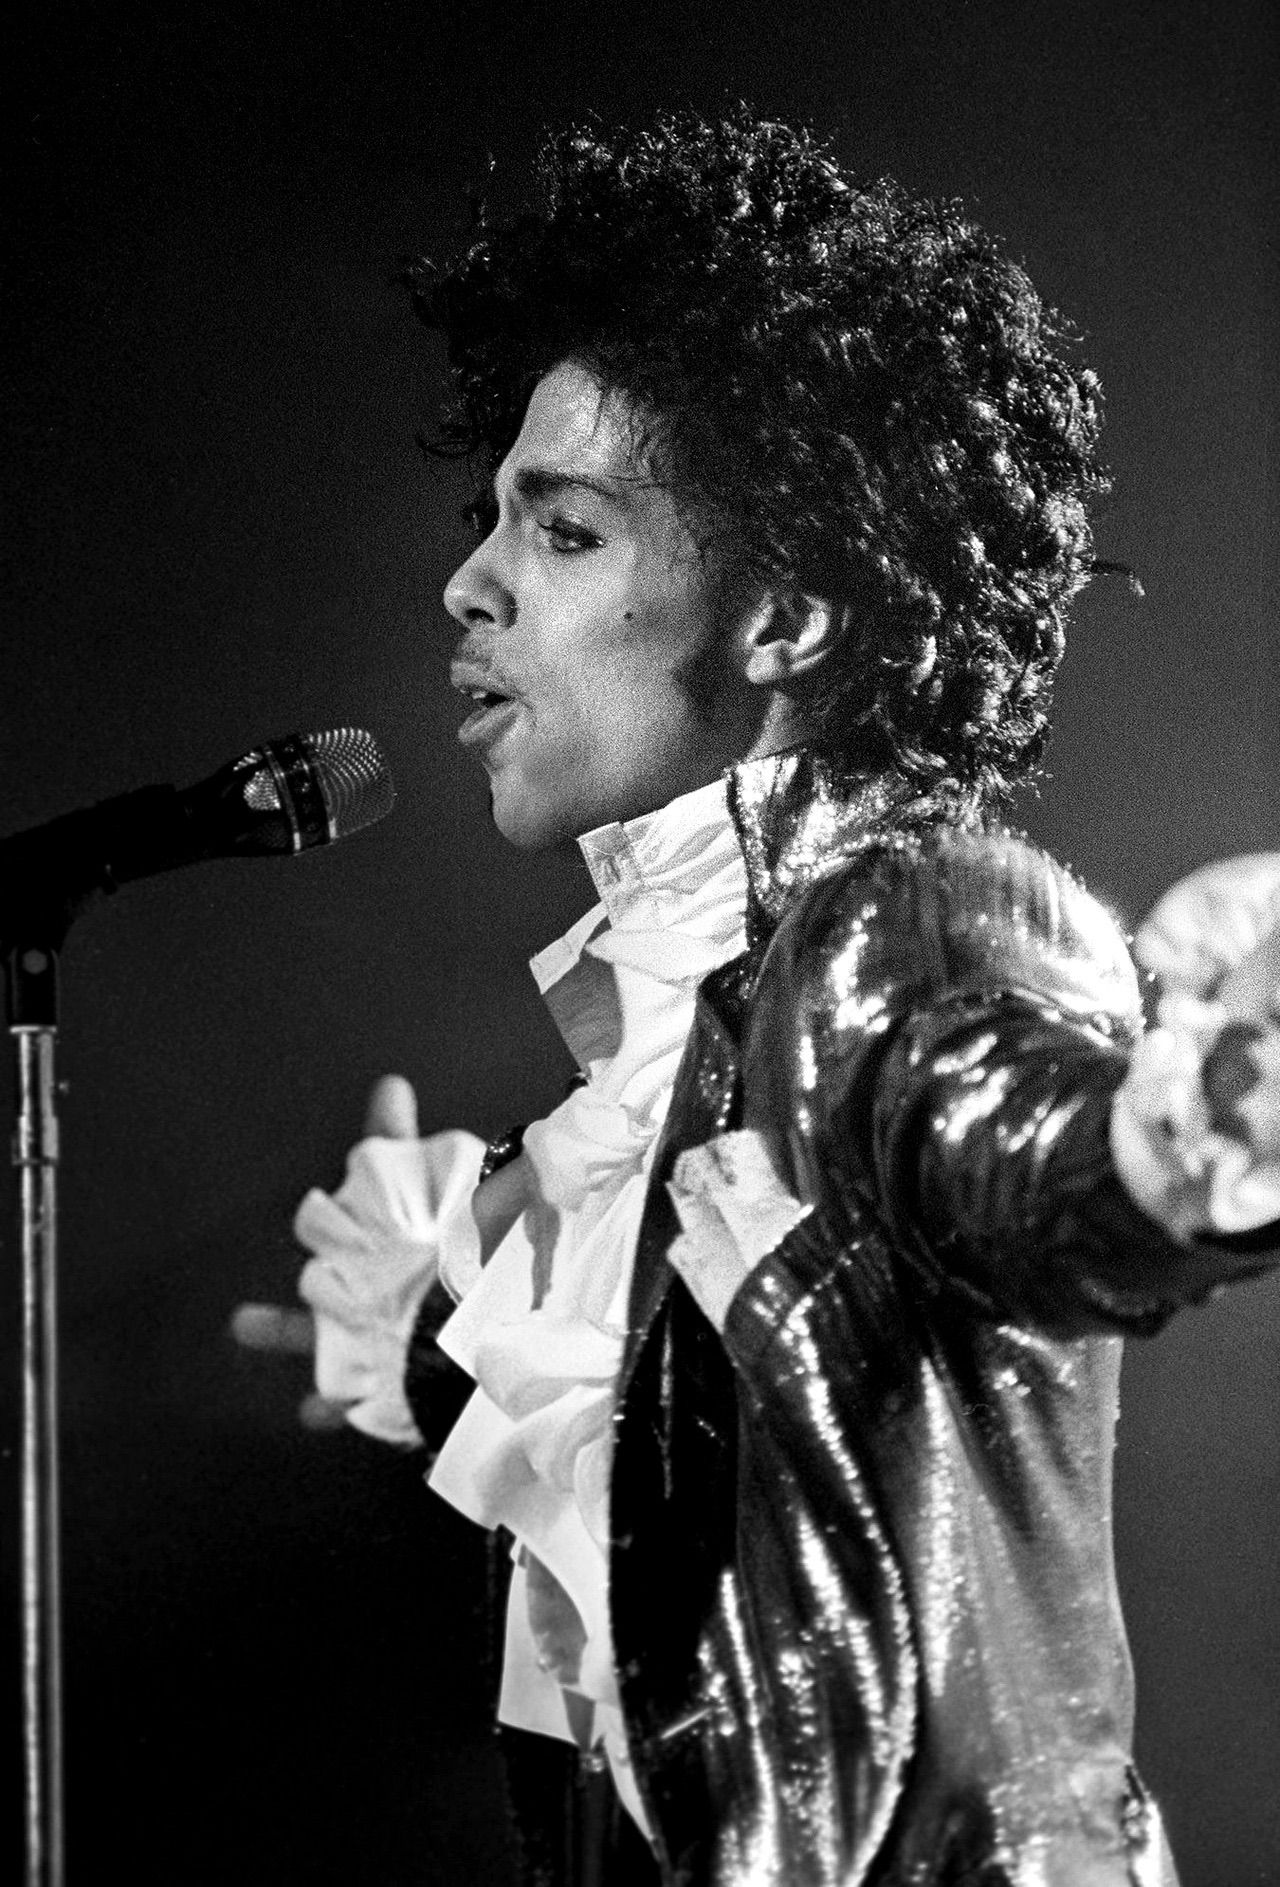 Prince Purple Rain Photos and Premium High Res Pictures - Getty Images